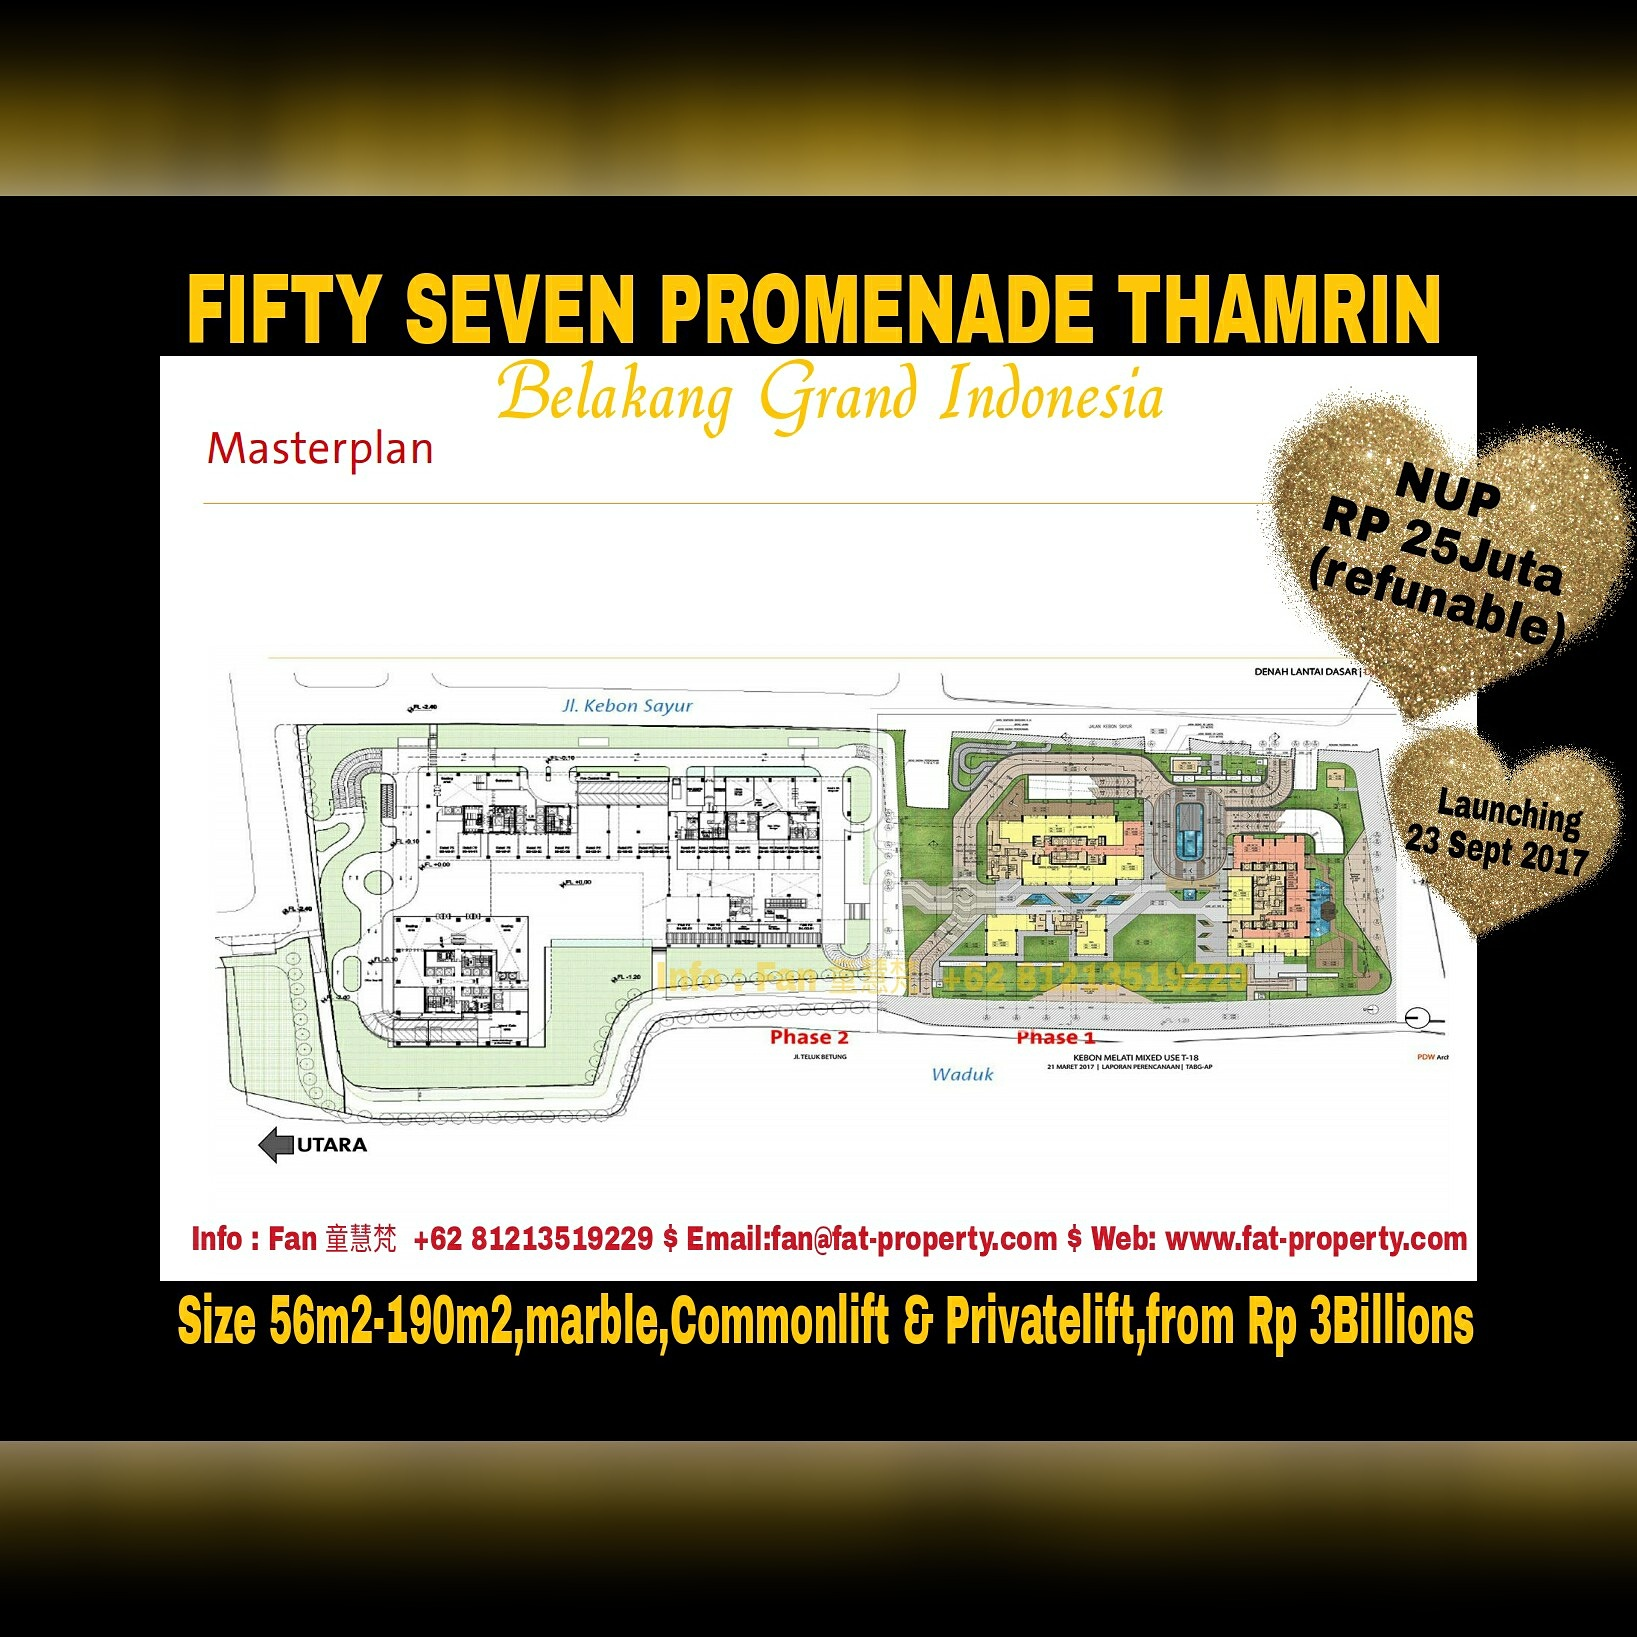 Apt Fifty Seven Promenade Thamrin Fat Property